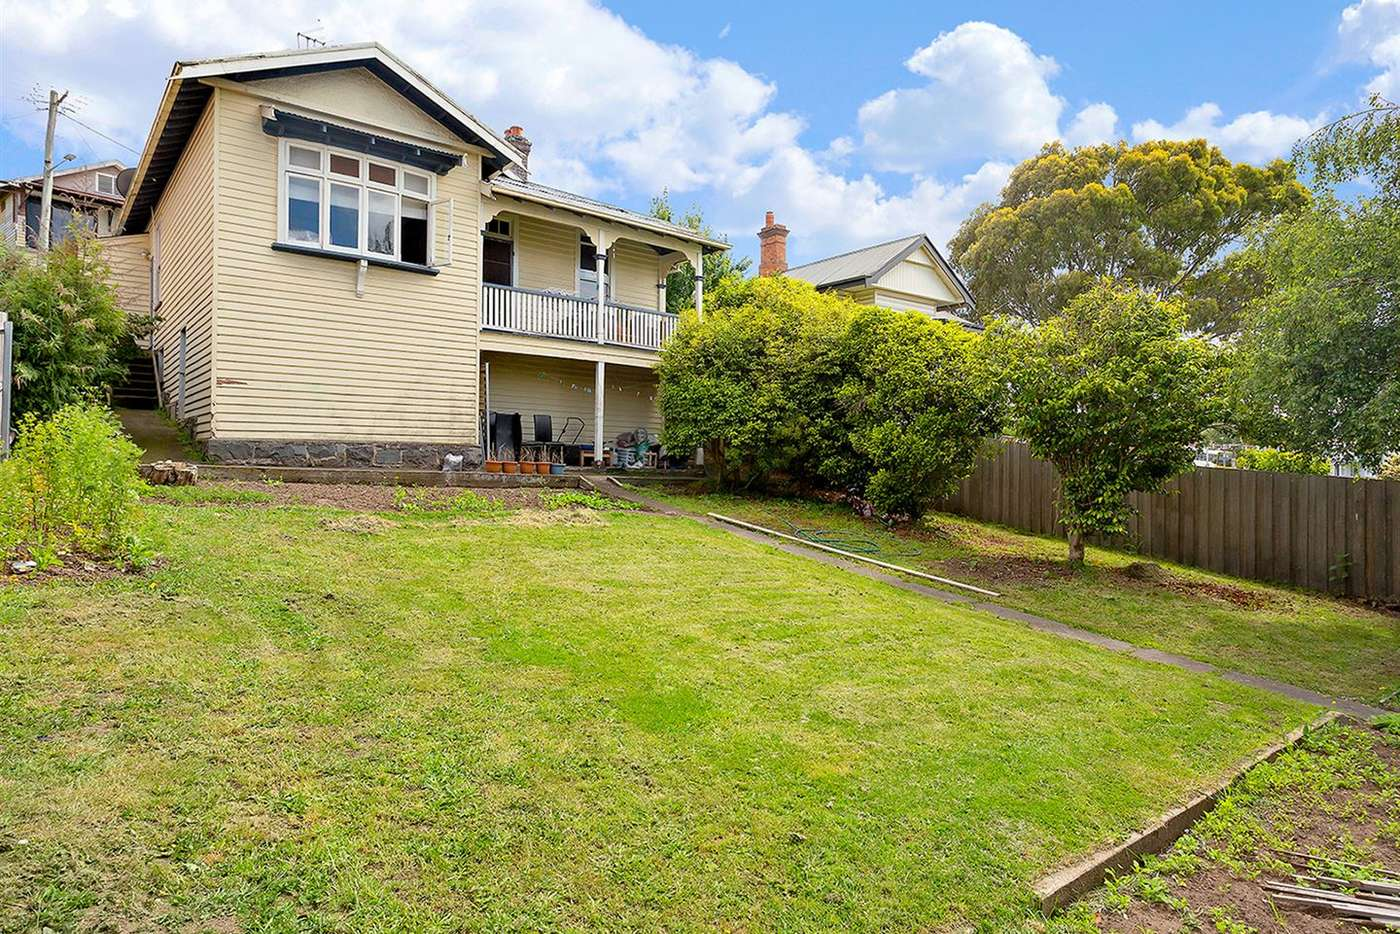 Main view of Homely house listing, 7 Jackson Street, Mowbray TAS 7248